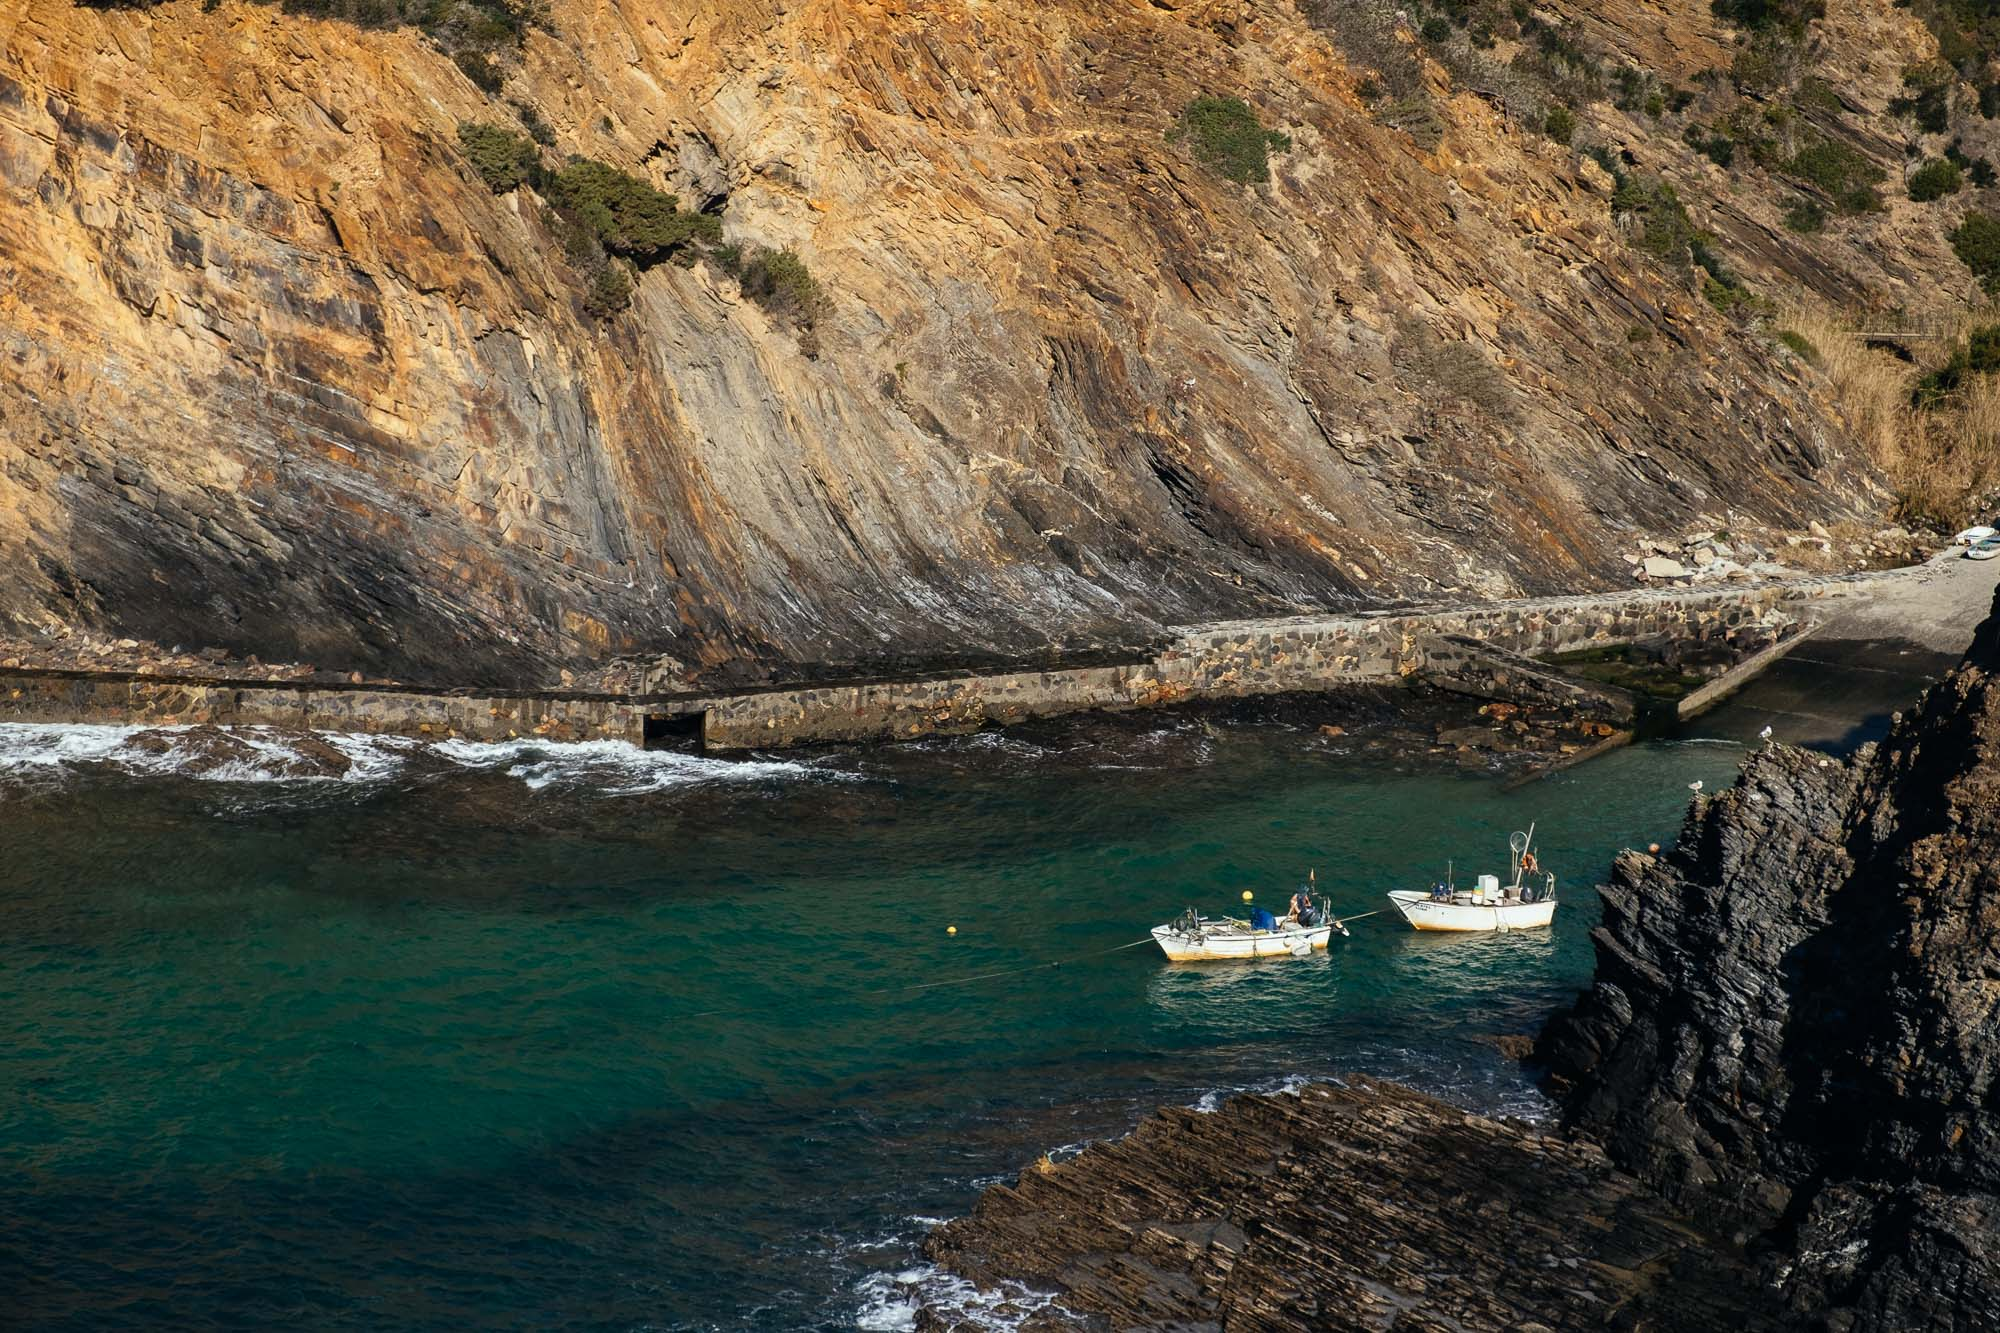 Portugal Travel Photography - Emanuele Siracusa Travel Photographer in Portugal